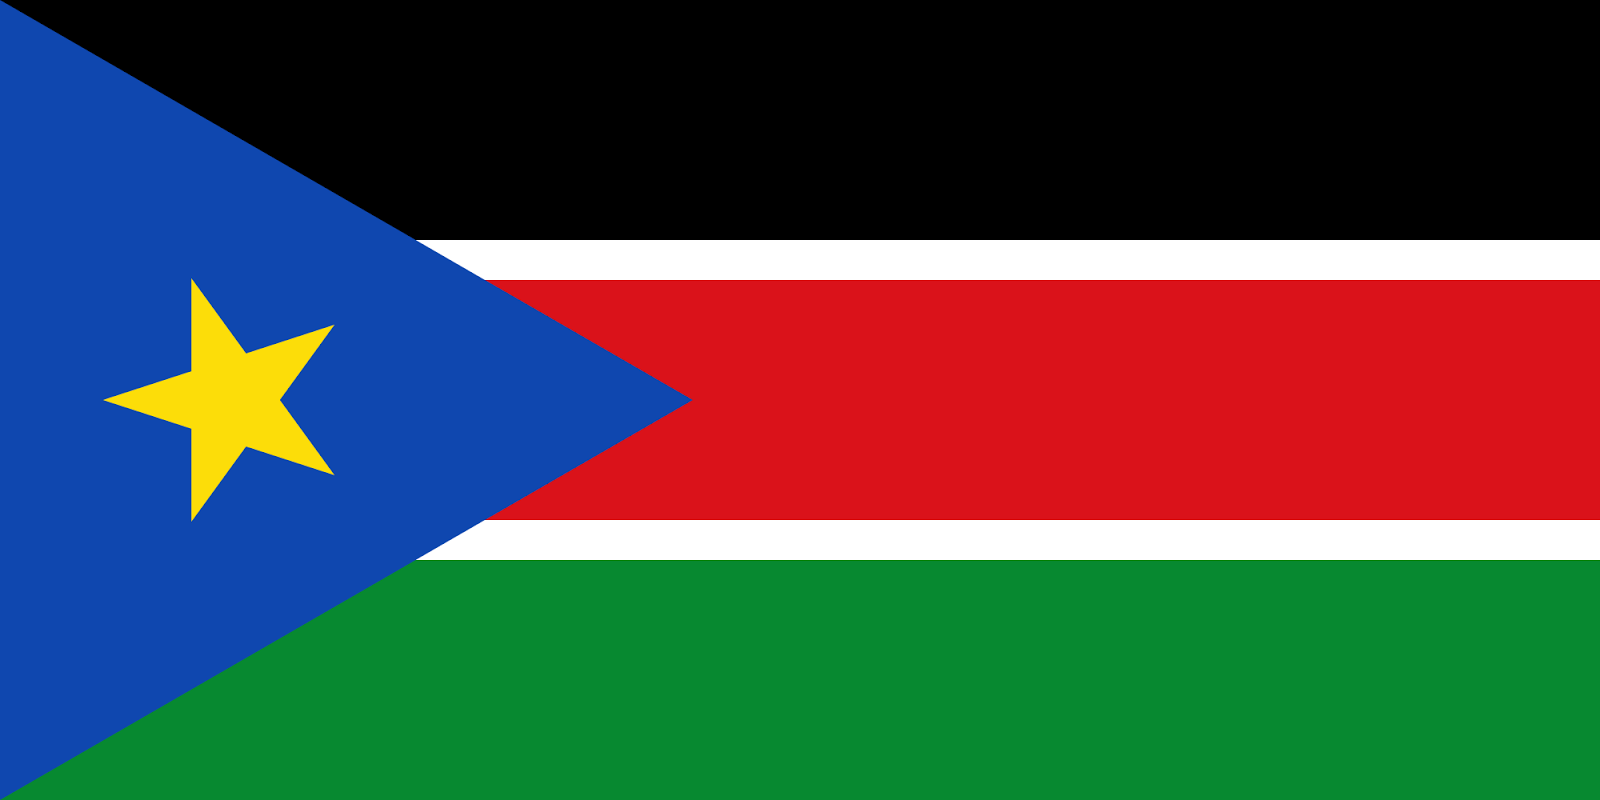 Despite A 'Football Match For Peace' In South Sudan, 3 Killed As Match Was On